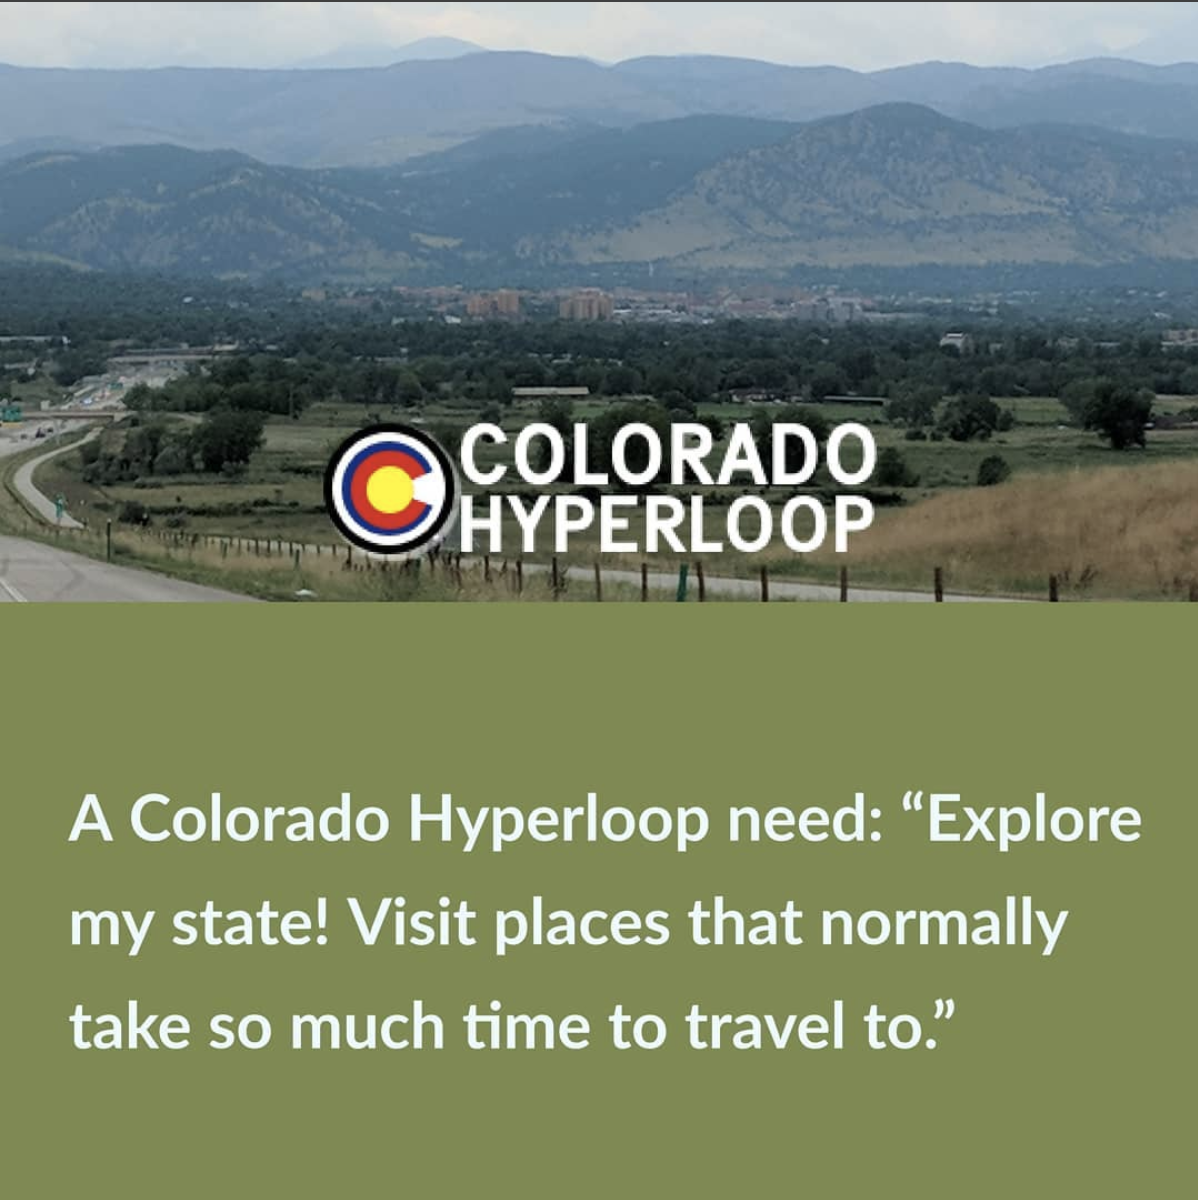 Explore my state! Visit places that normally take so much time to travel to.""